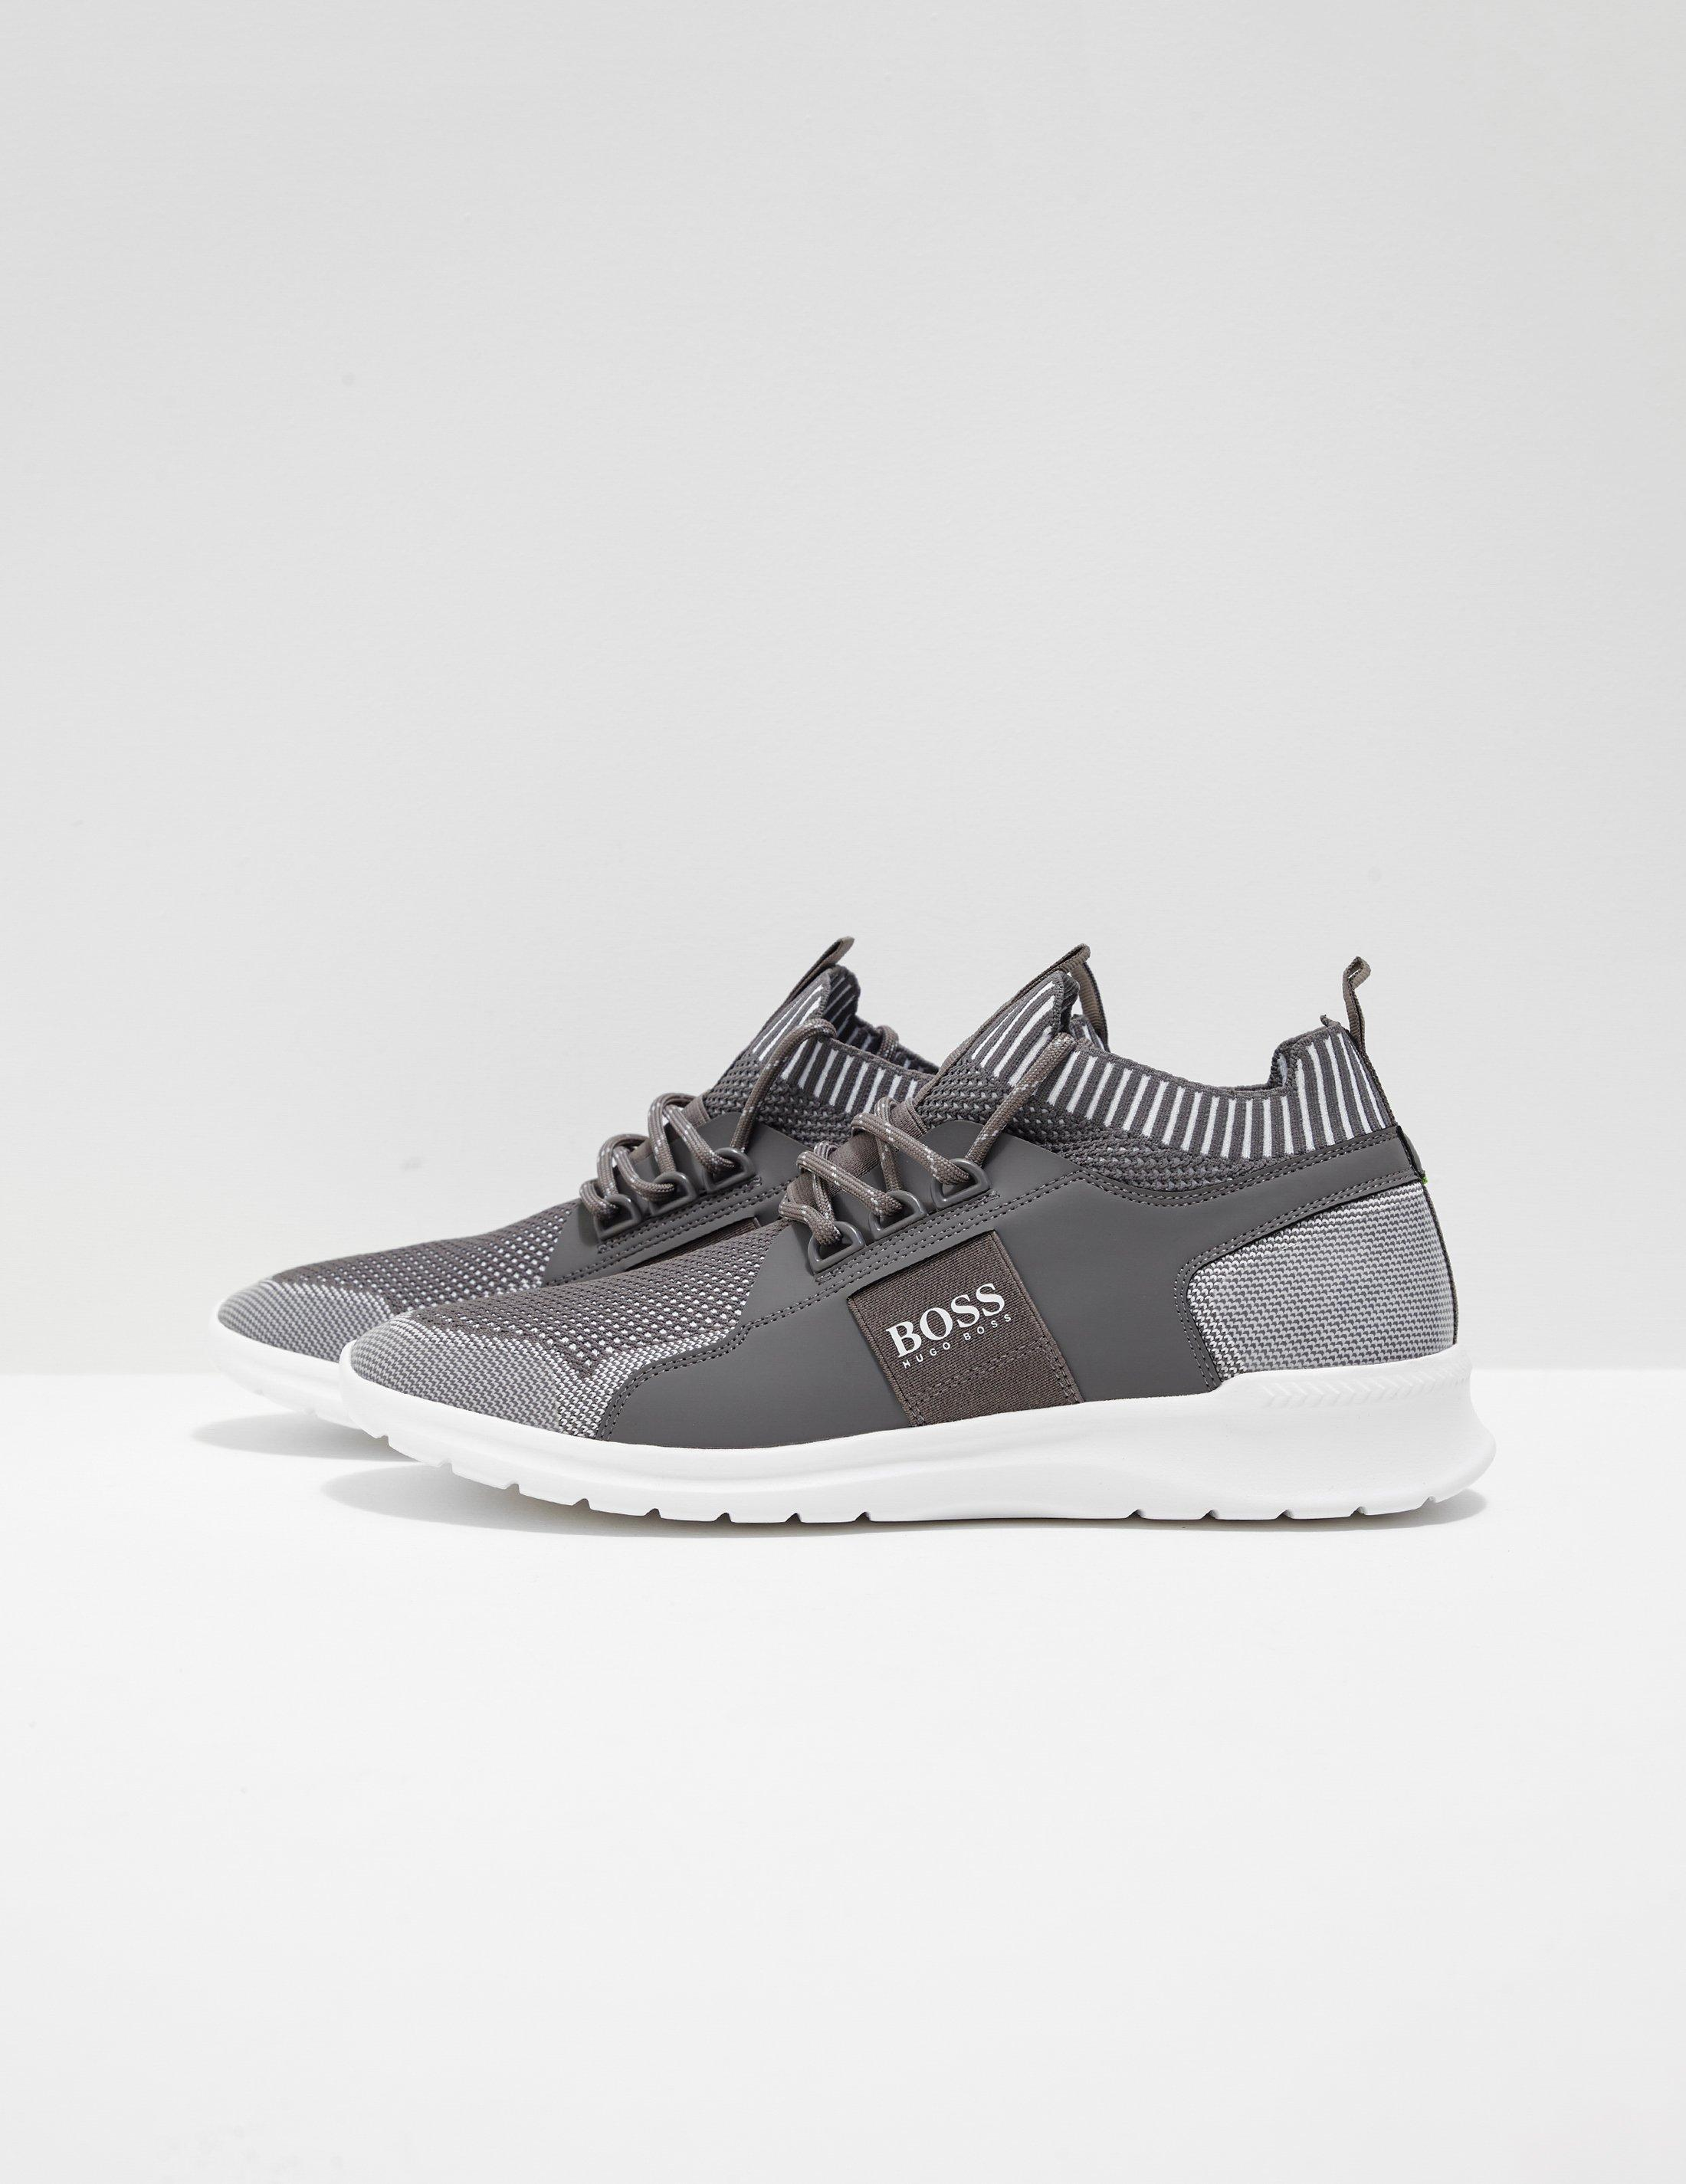 4353aebbcfc6a8 Boss Mens Extreme Run Knit Grey in Gray for Men - Lyst